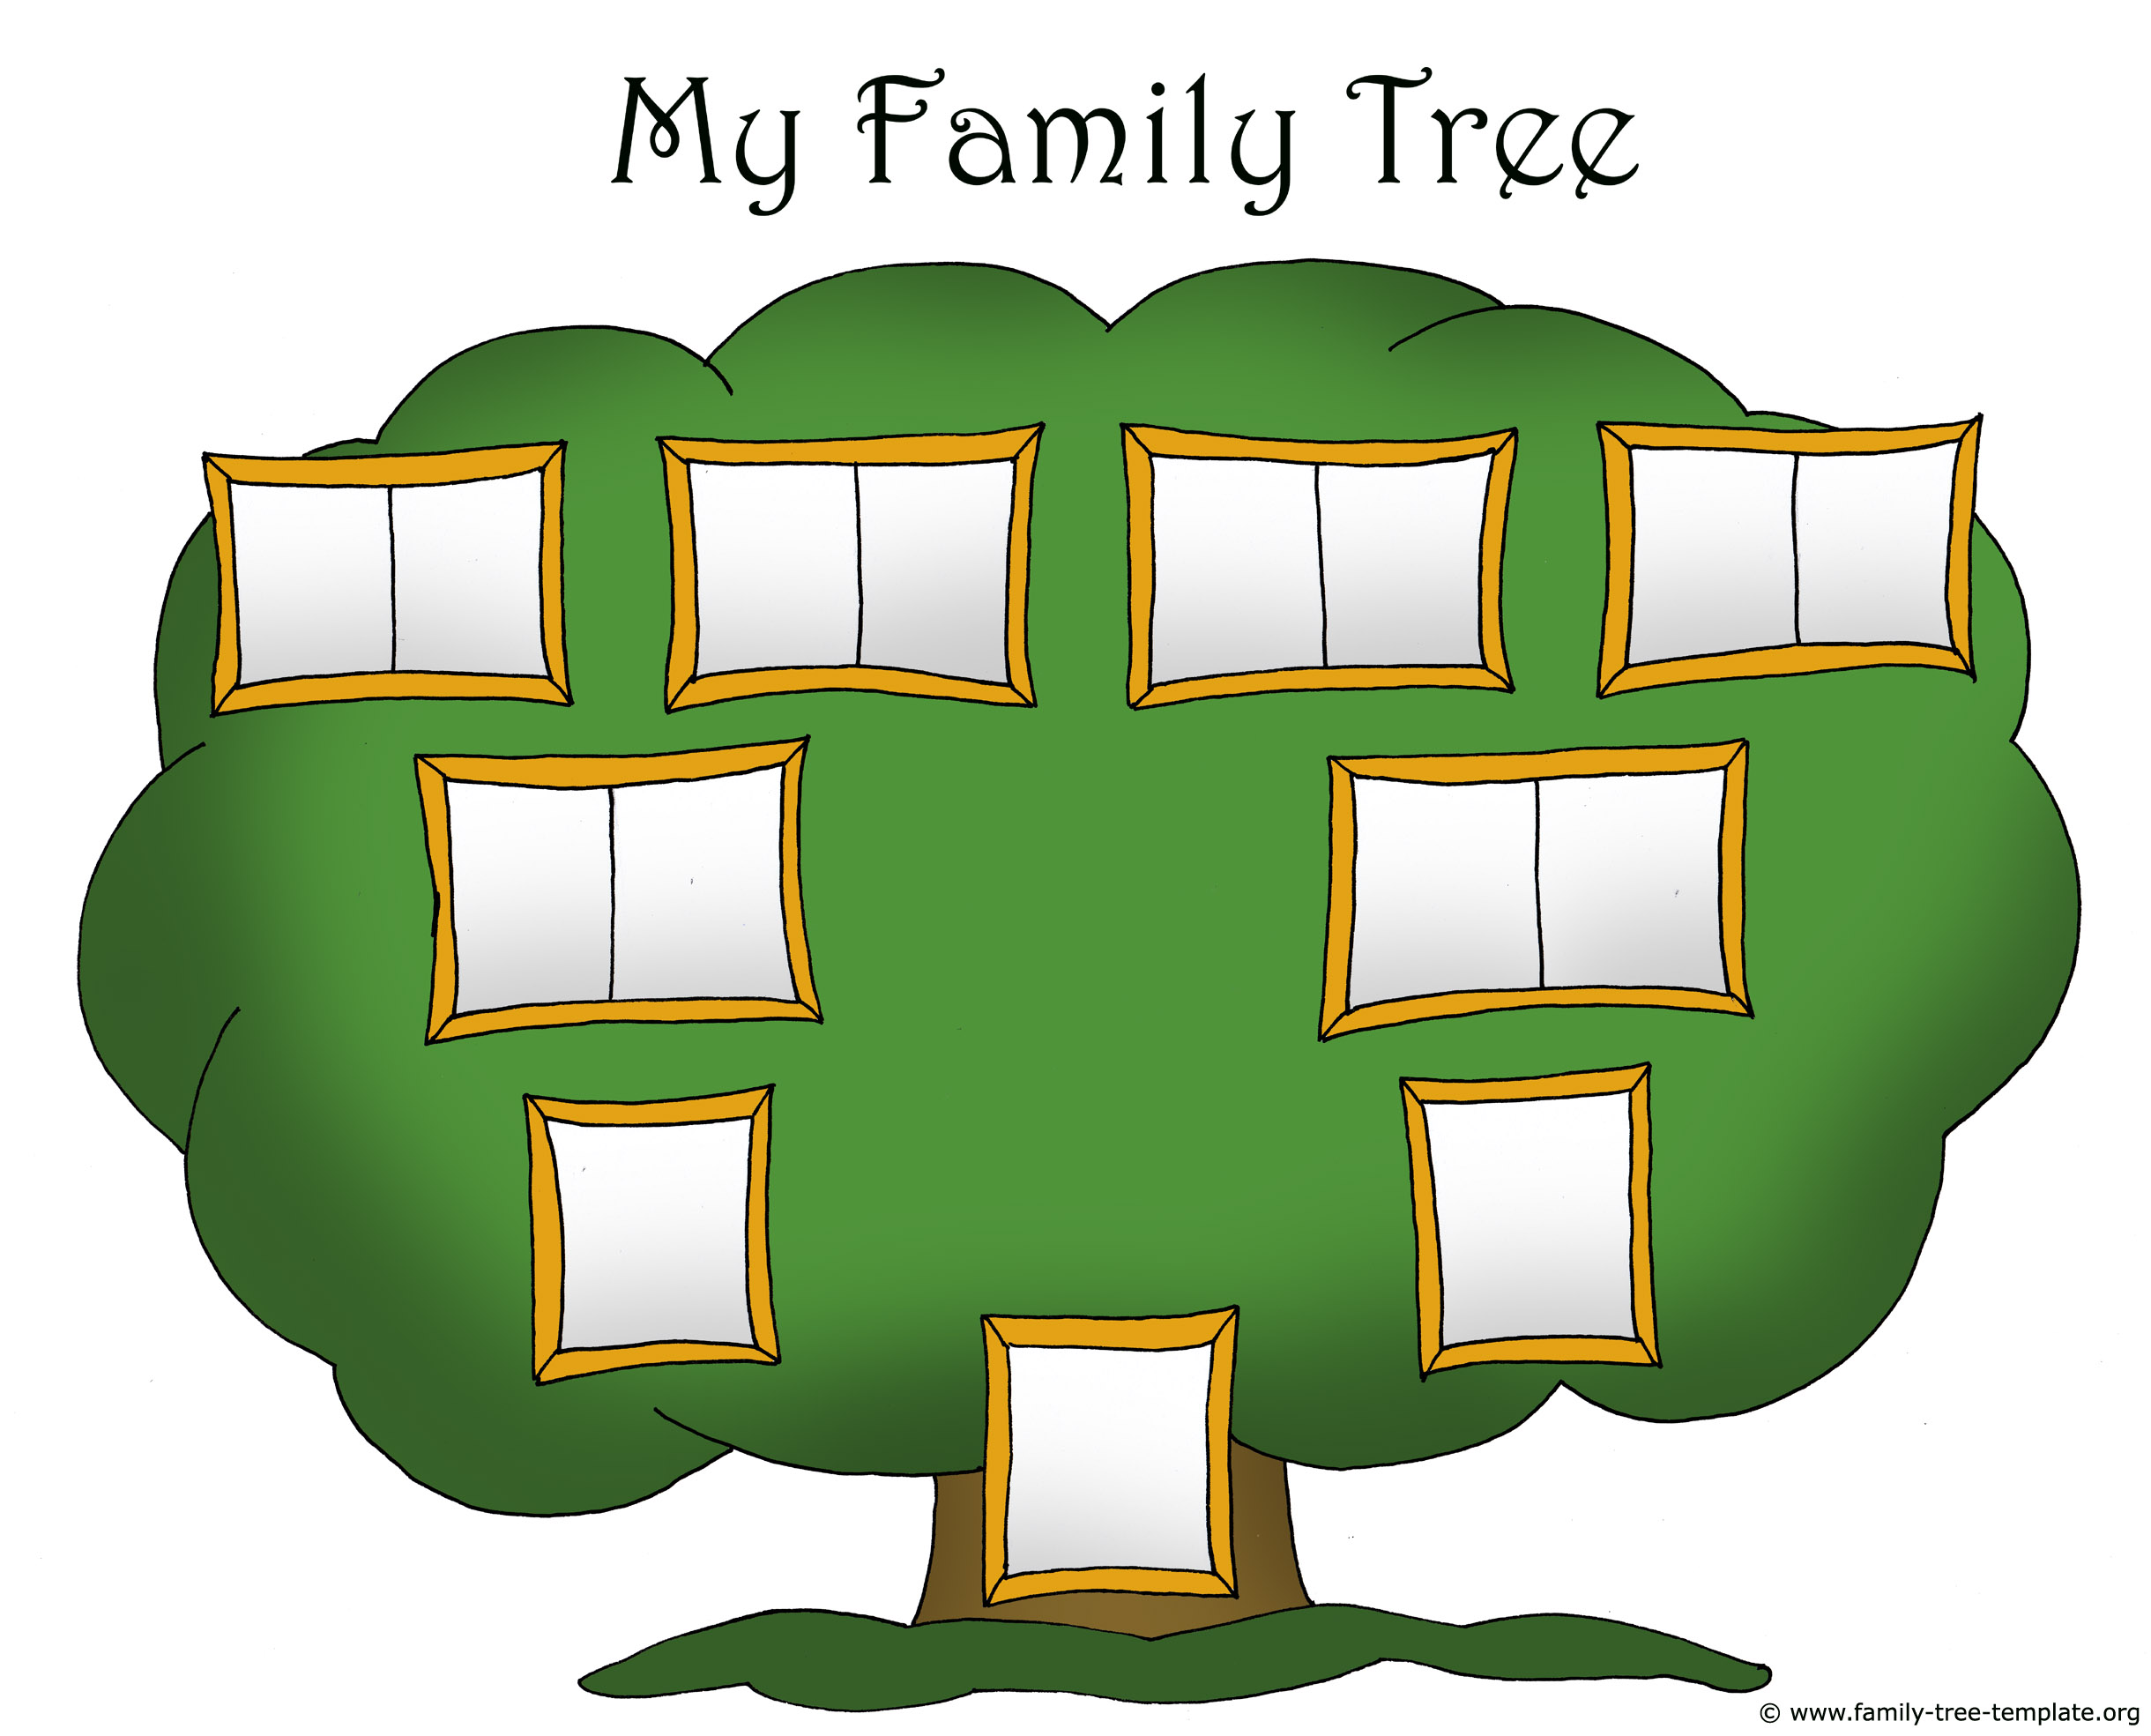 Family tree template chart for kids with picture frames for gluing in photos.